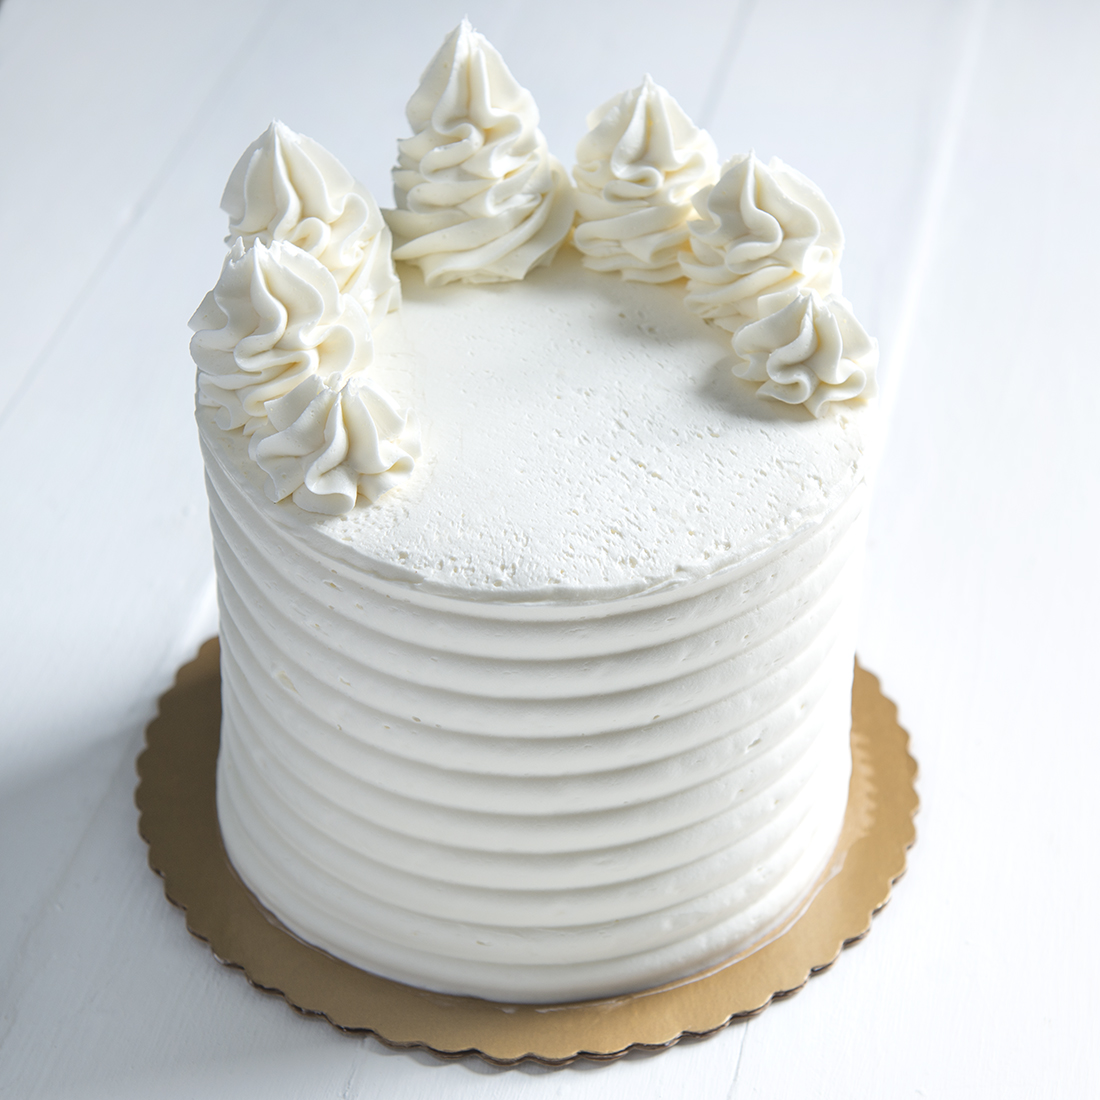 Simply Vanilla - Vanilla cake filled and frosted with vanilla buttercream6